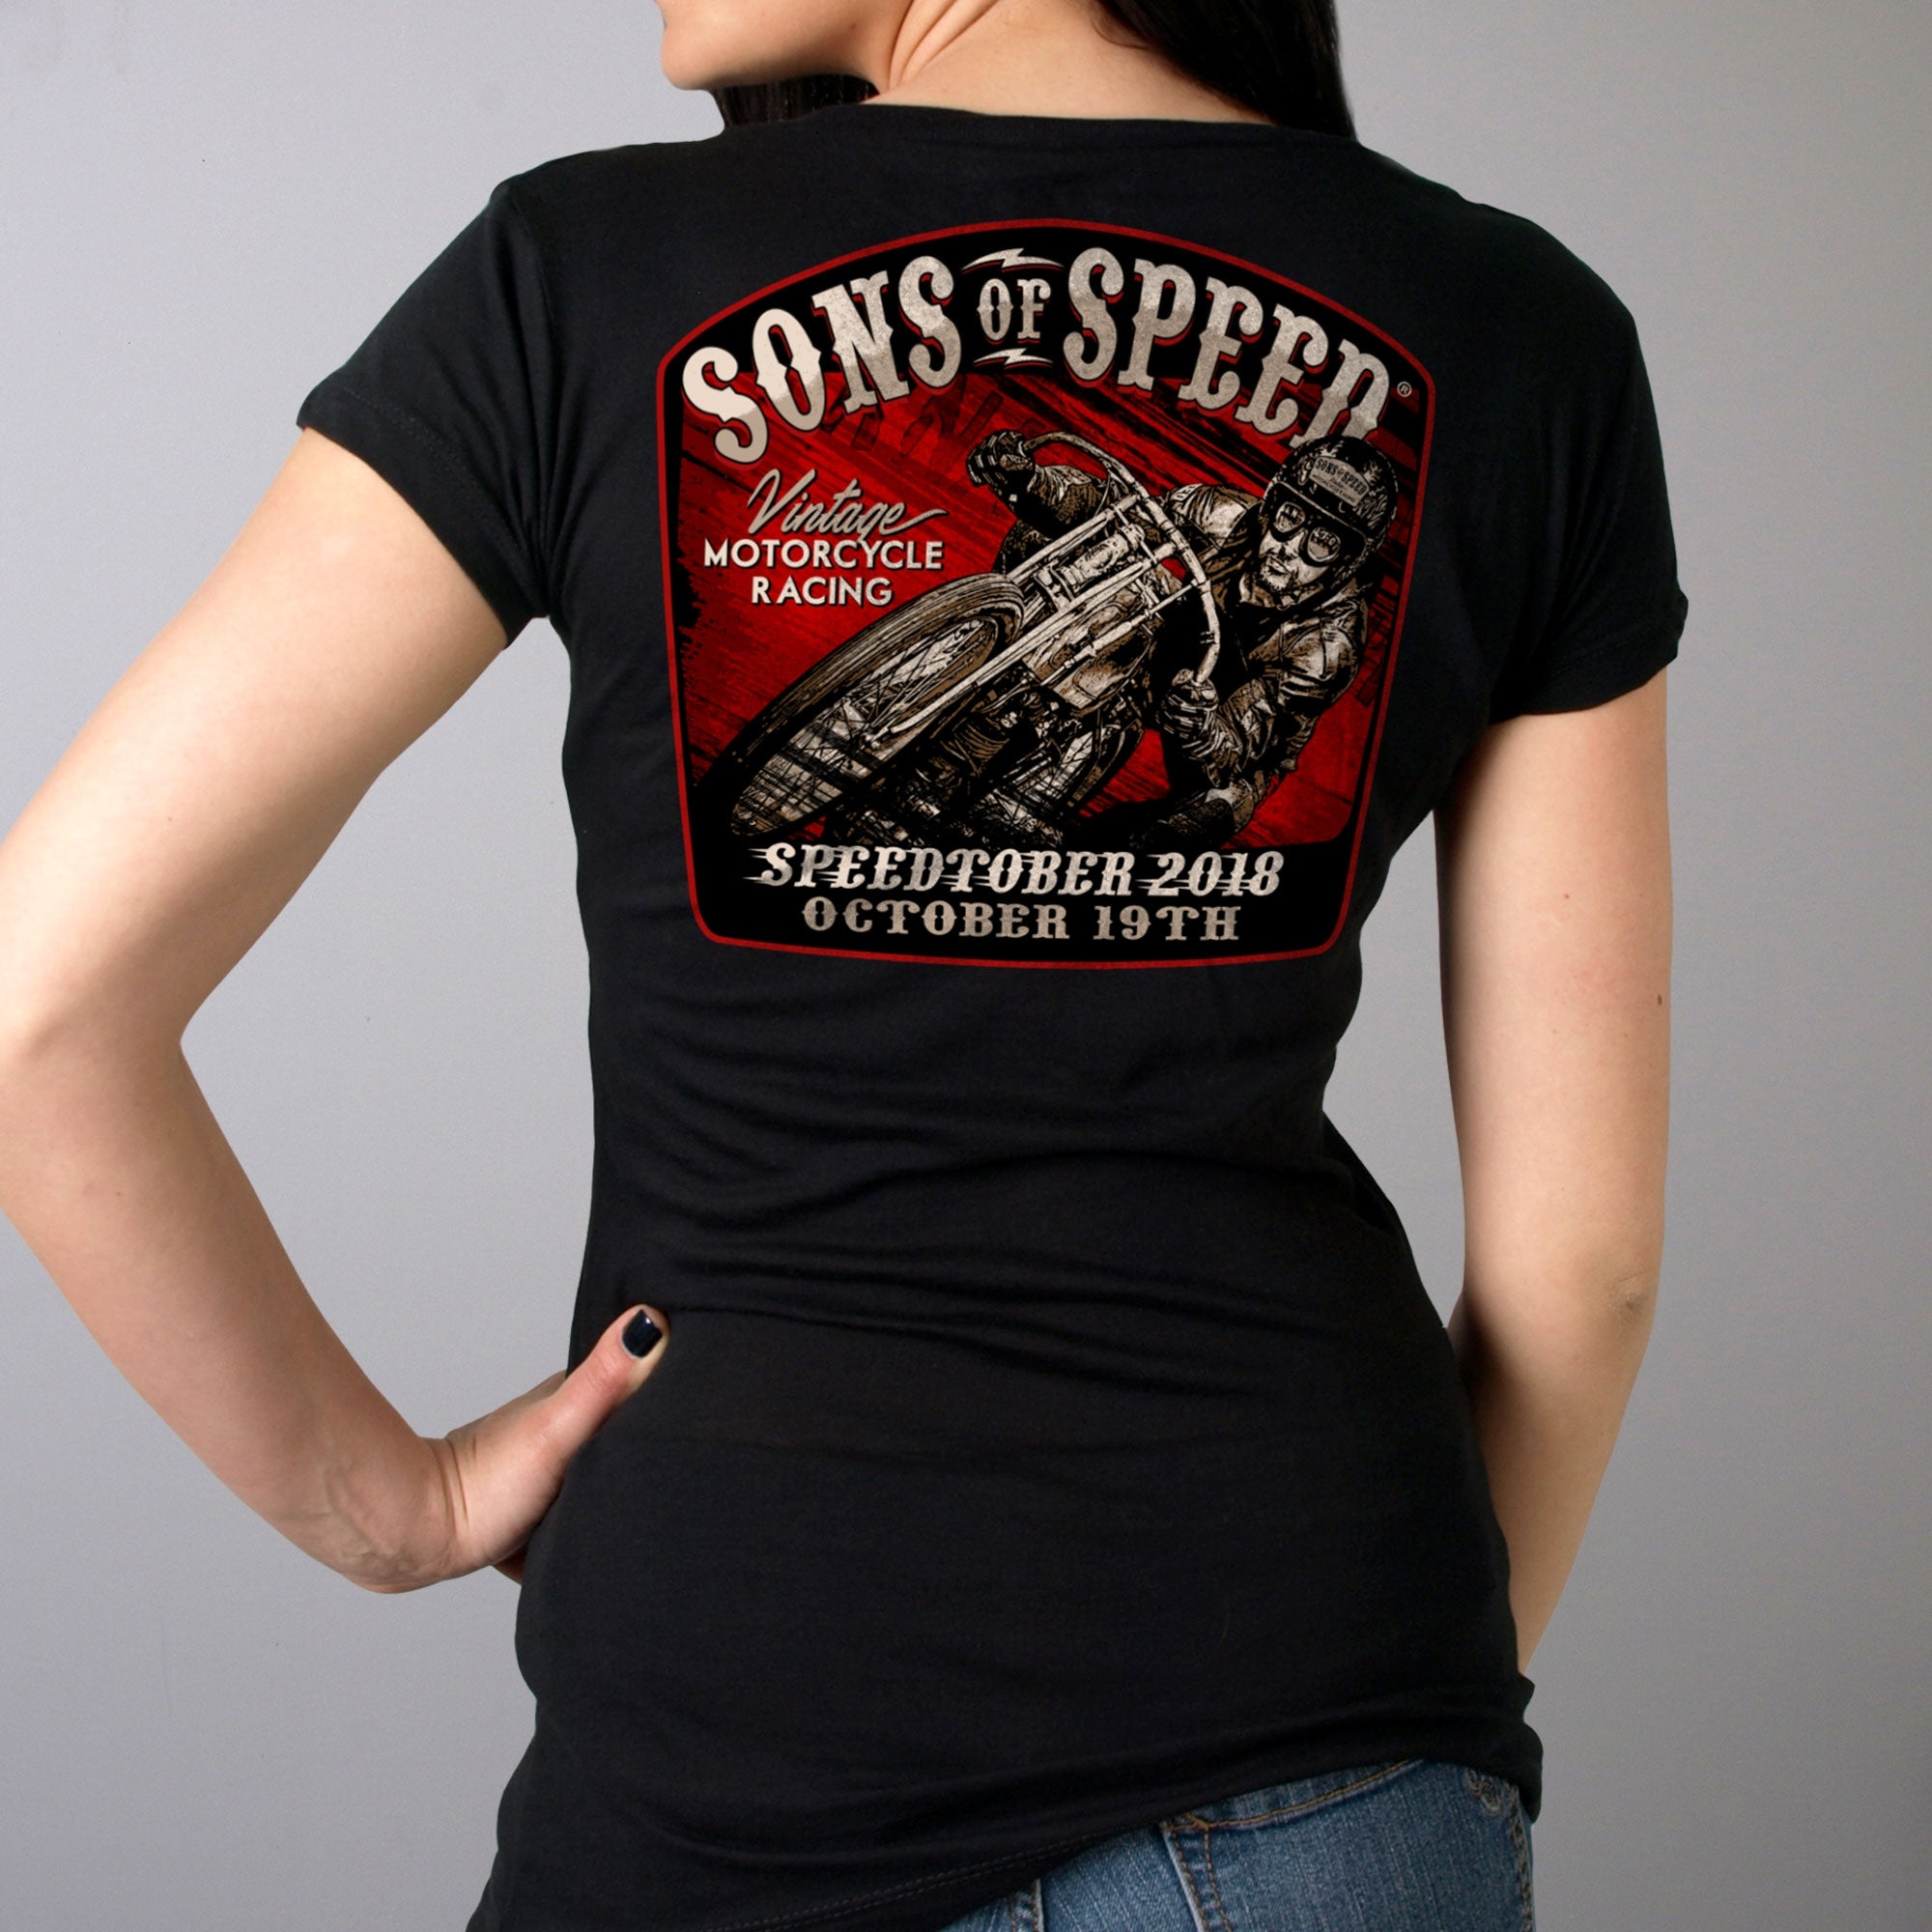 Official 2018 Sons of Speed Speedtember Ladies Race Shirt